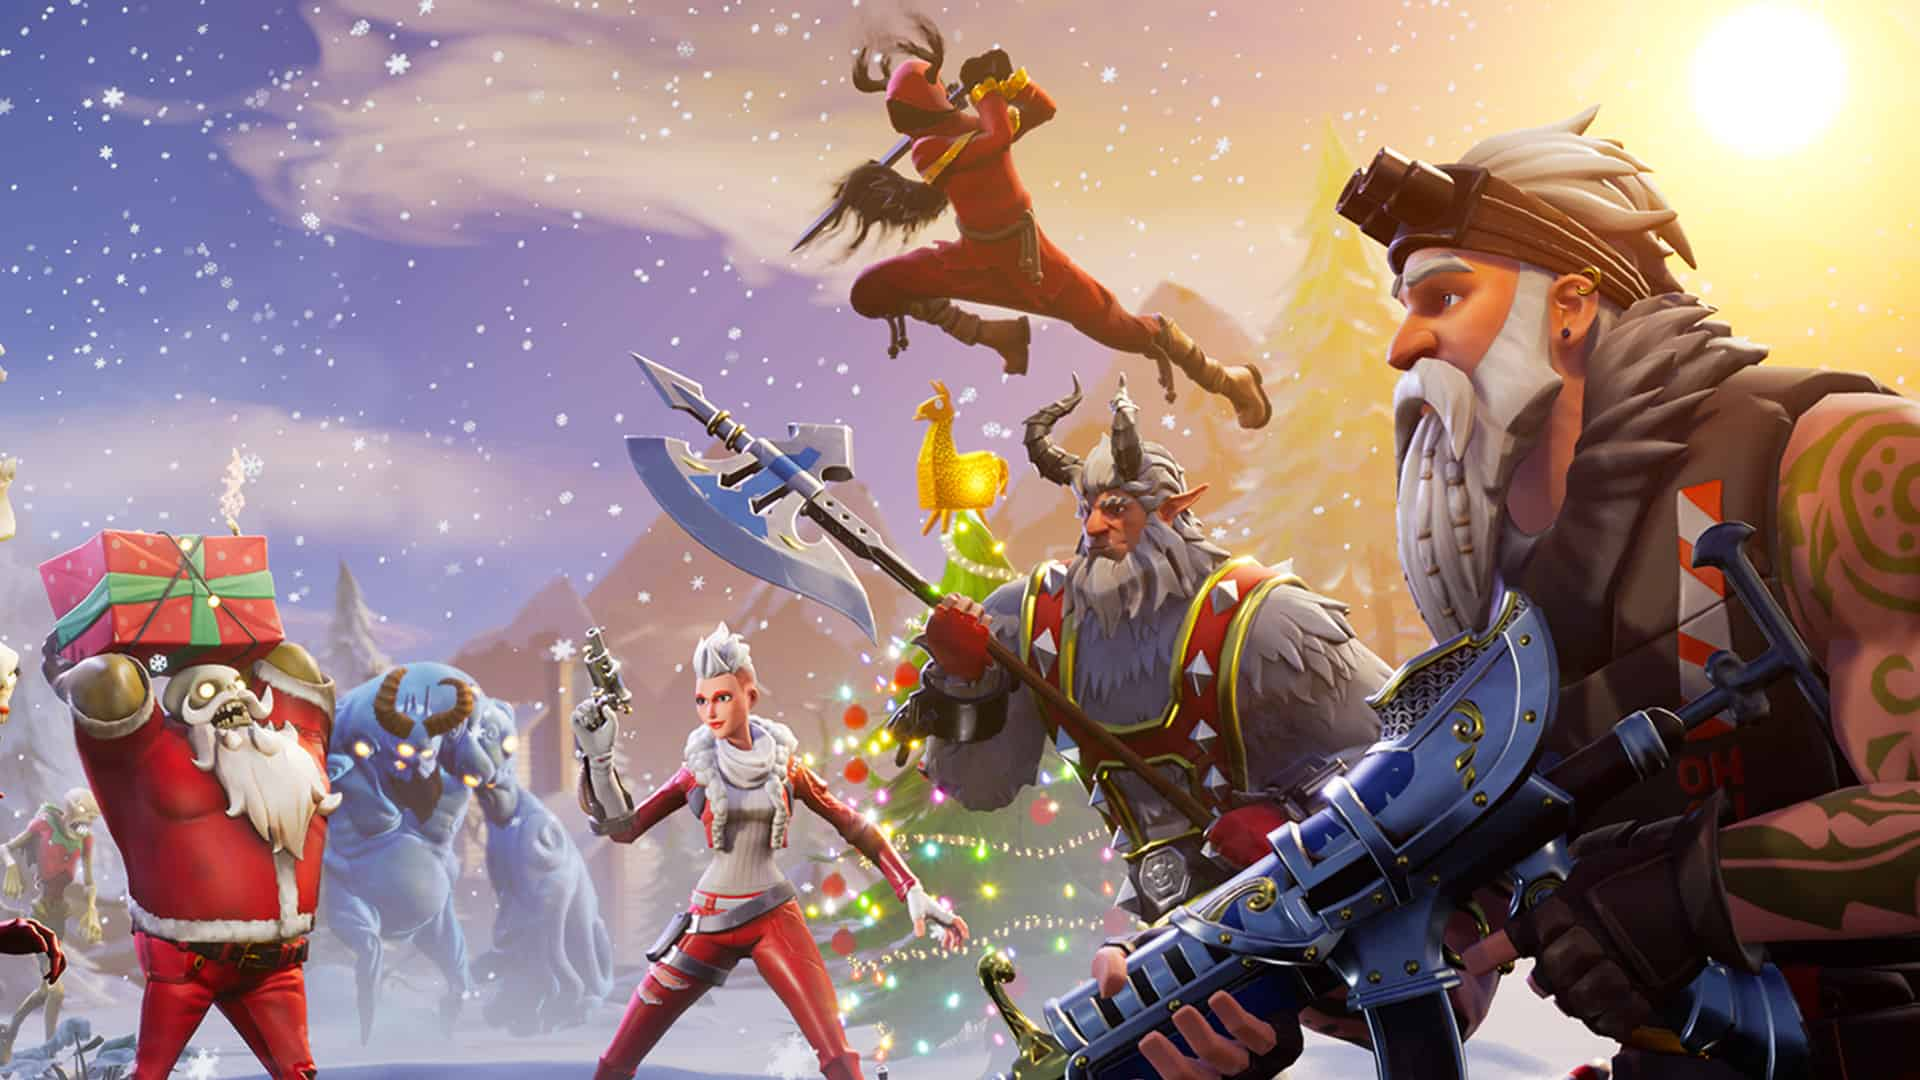 14 Days Of Fortnite Save The World Fortnite Patch V7 10 Features Epic Winter Themed Festivities